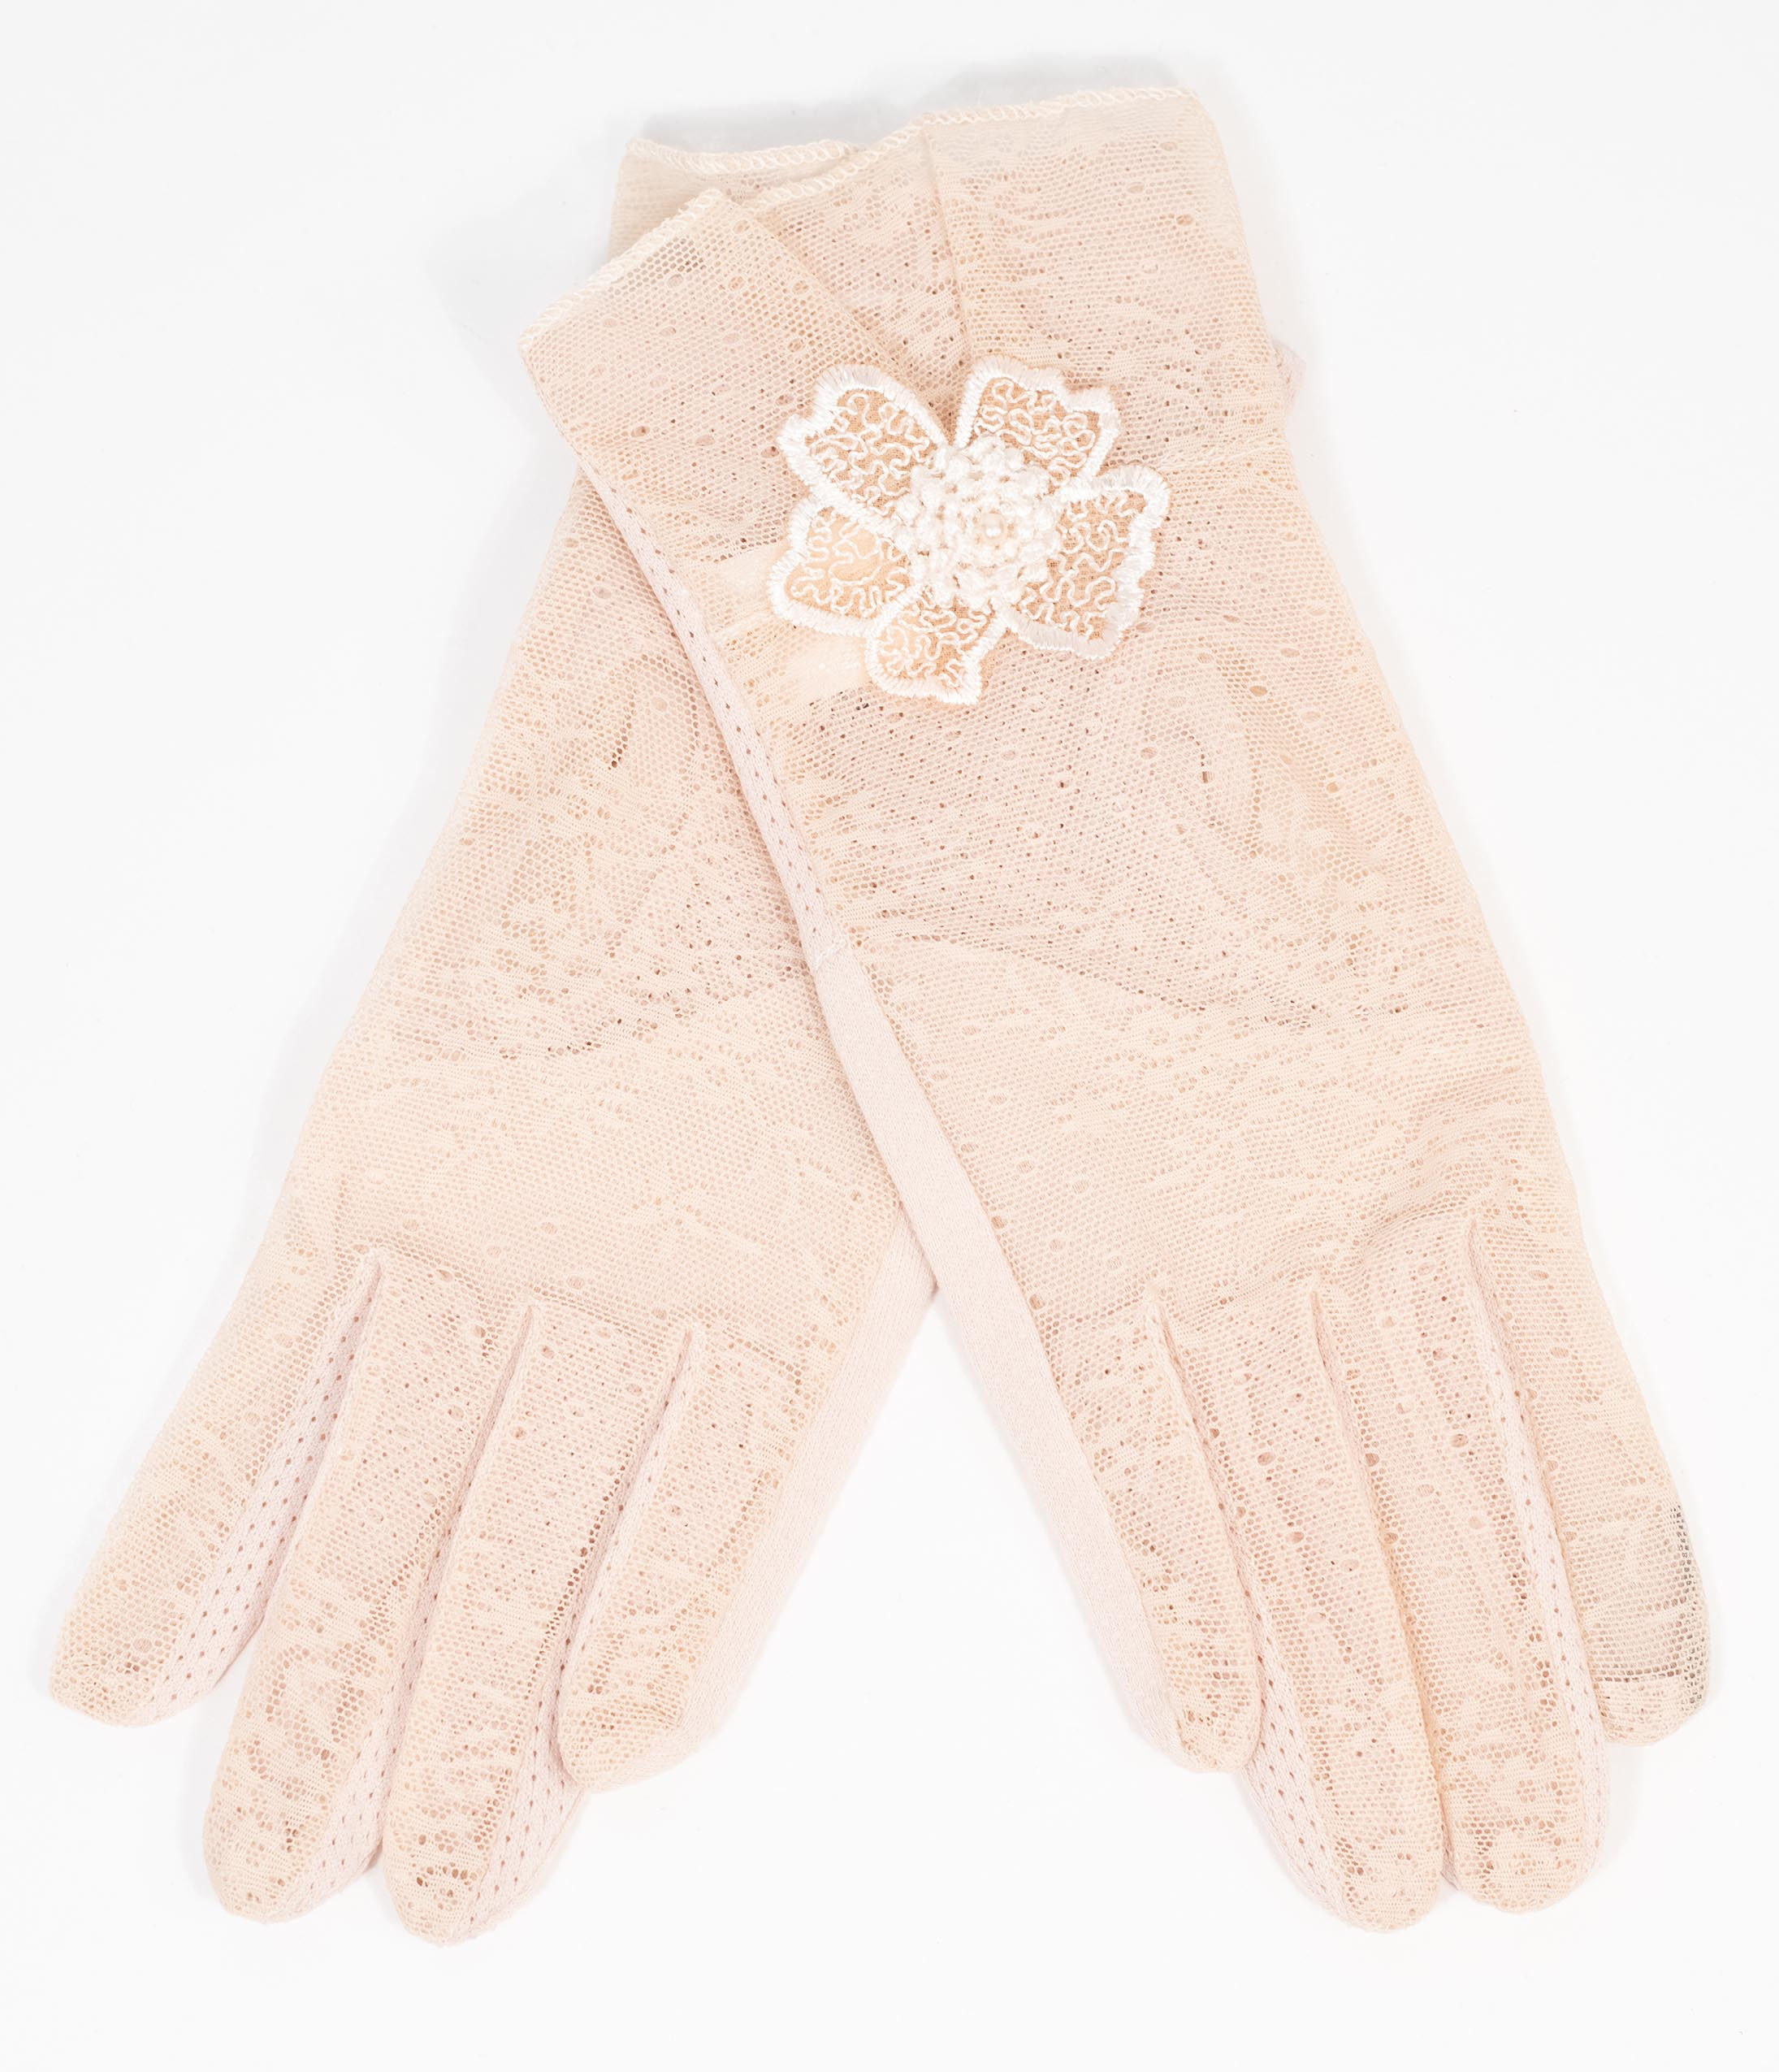 Vintage Style Gloves- Long, Wrist, Evening, Day, Leather, Lace Beige Lace  Floral Accent Gloves $22.00 AT vintagedancer.com